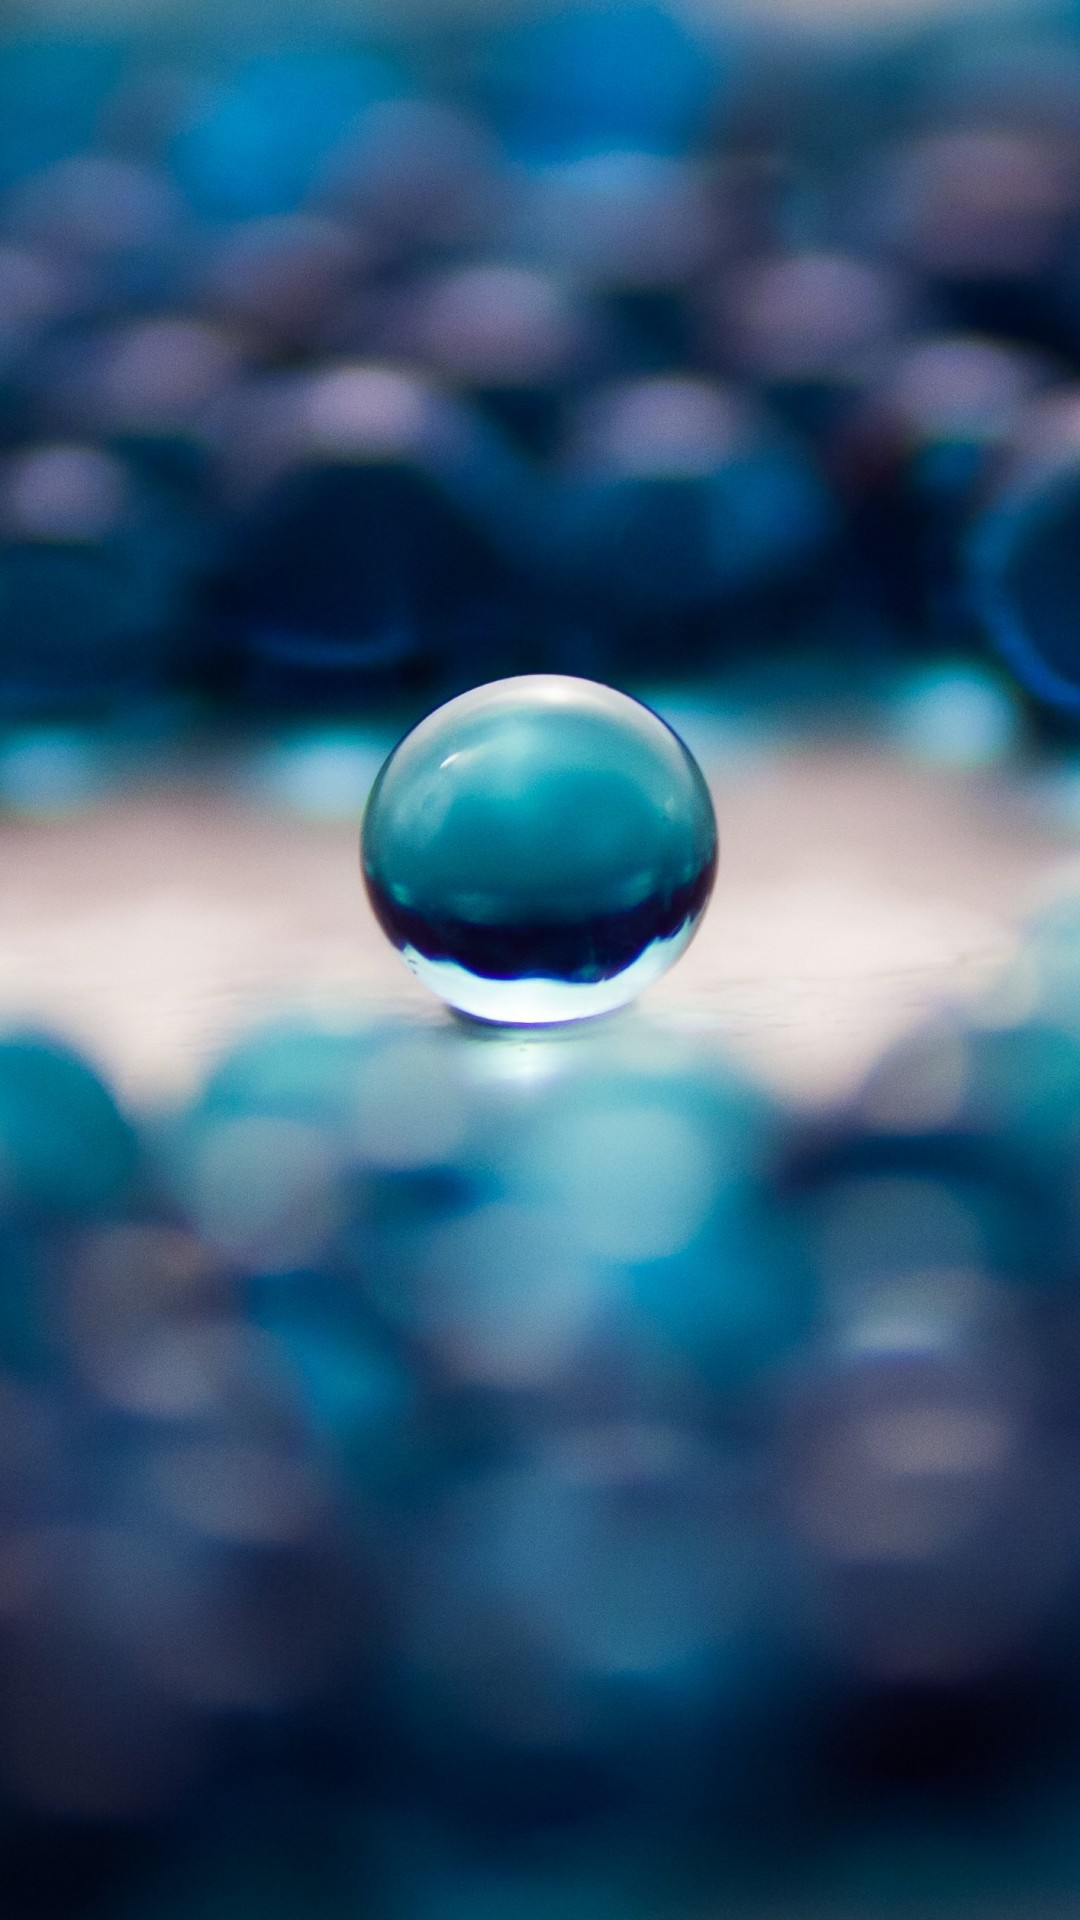 Water Balls Wallpaper for SAMSUNG Galaxy S5